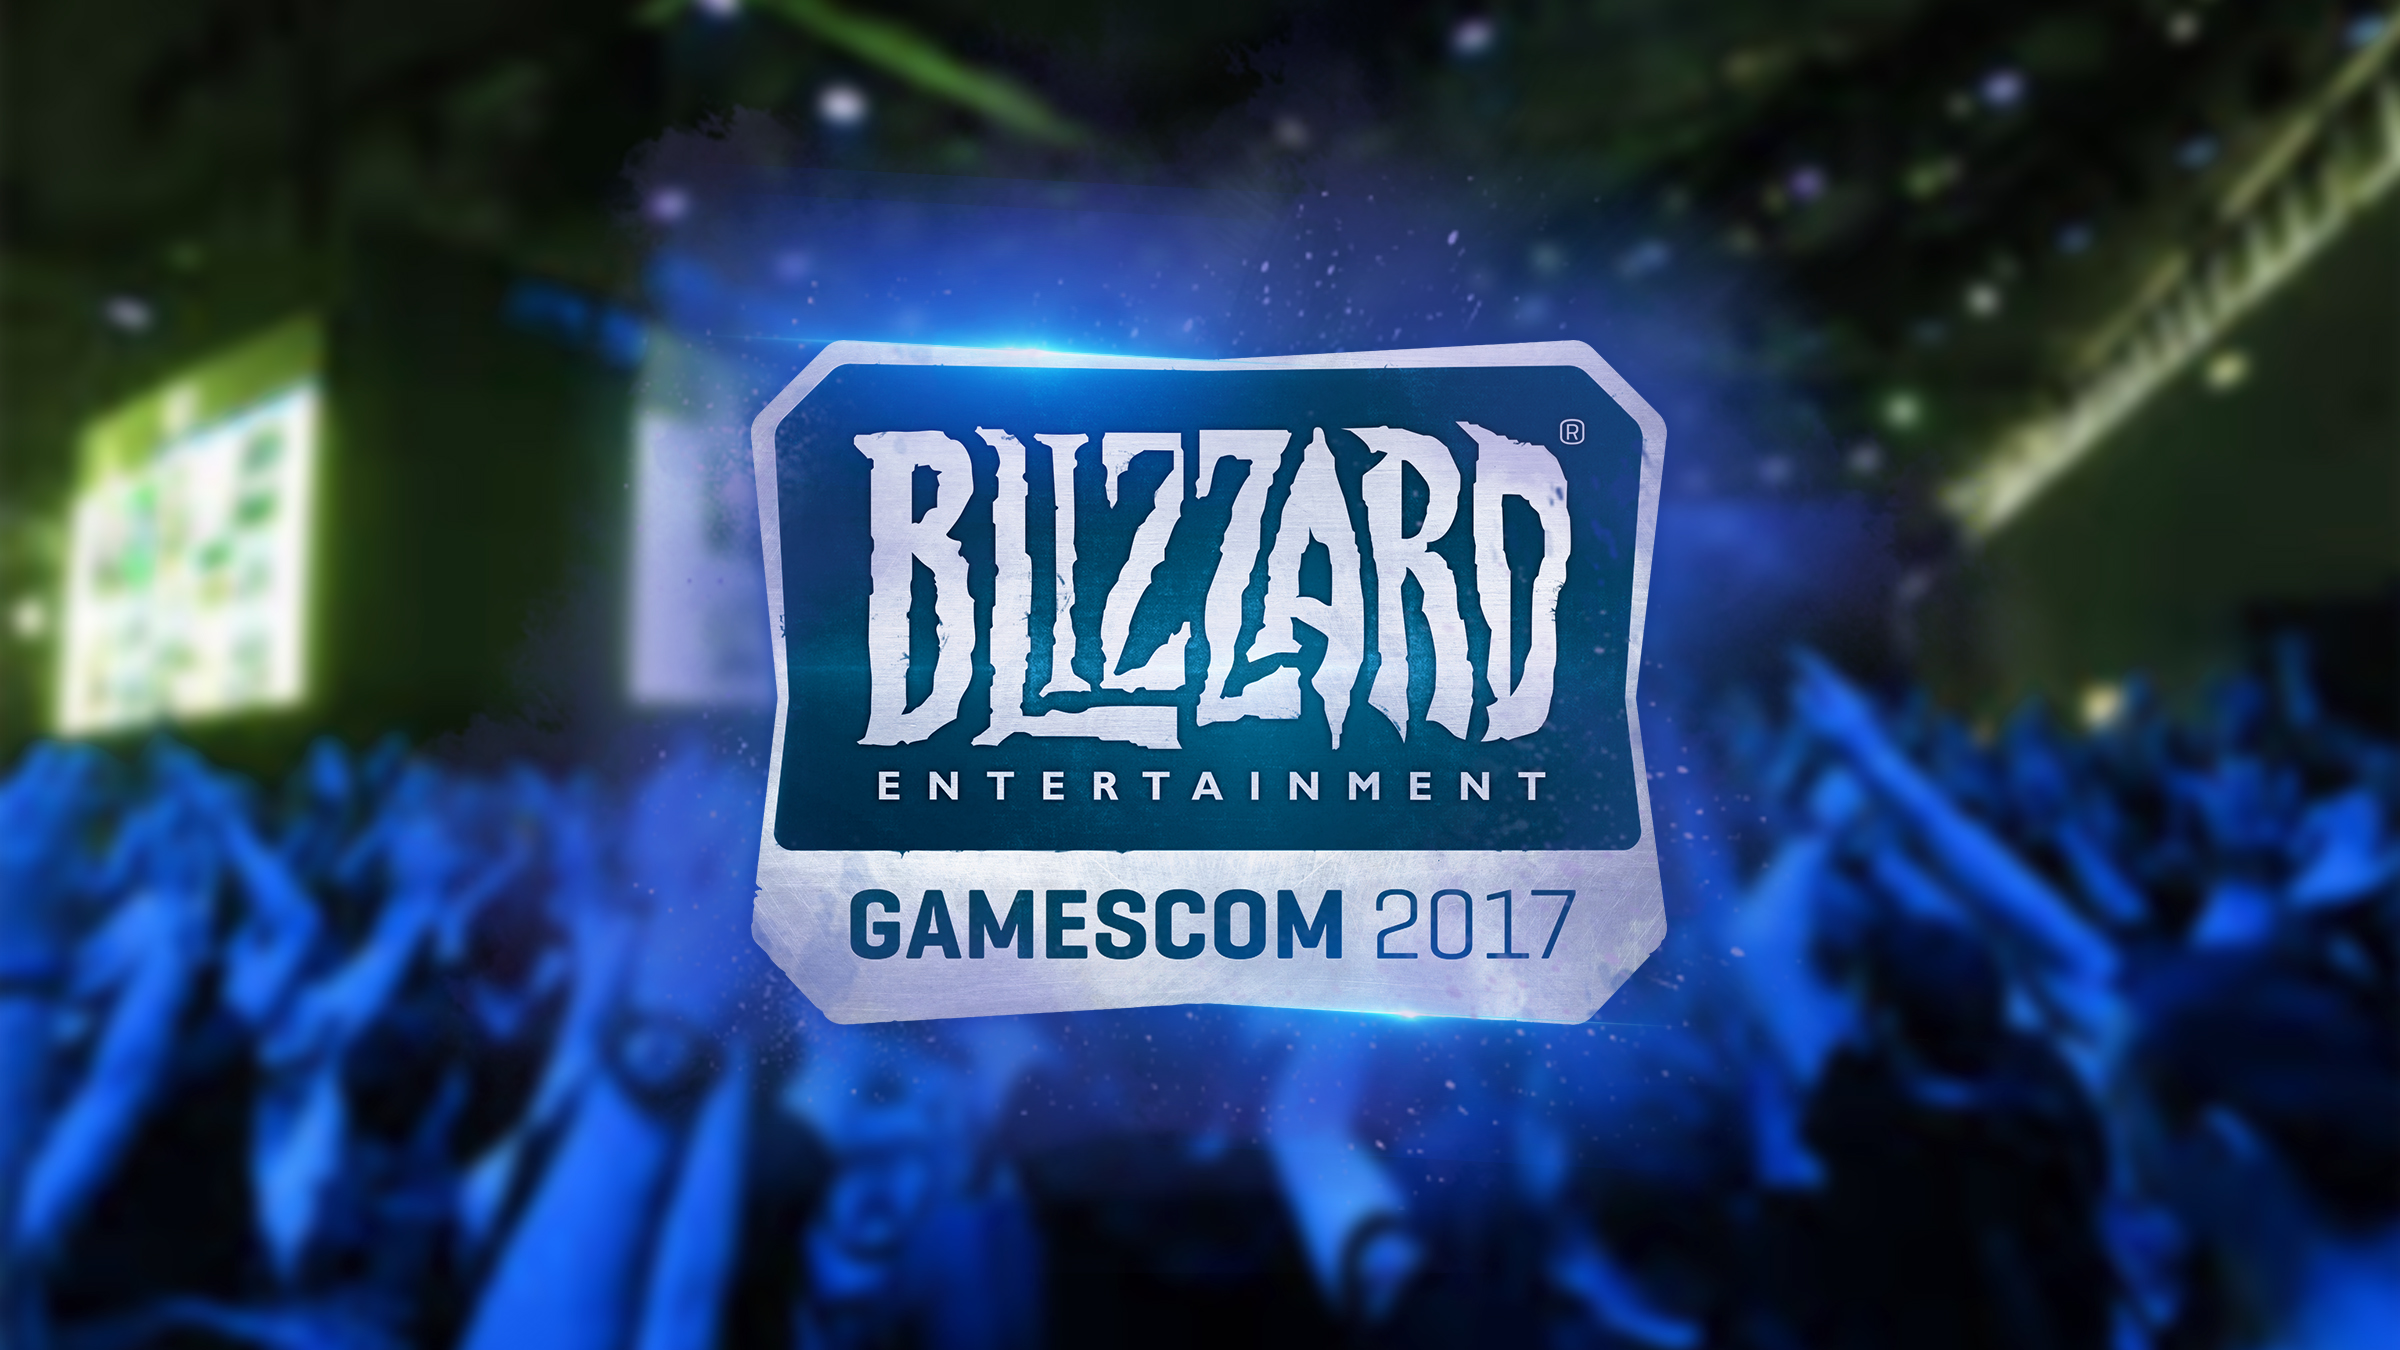 Blizzard Entertainment en la gamescom 2017